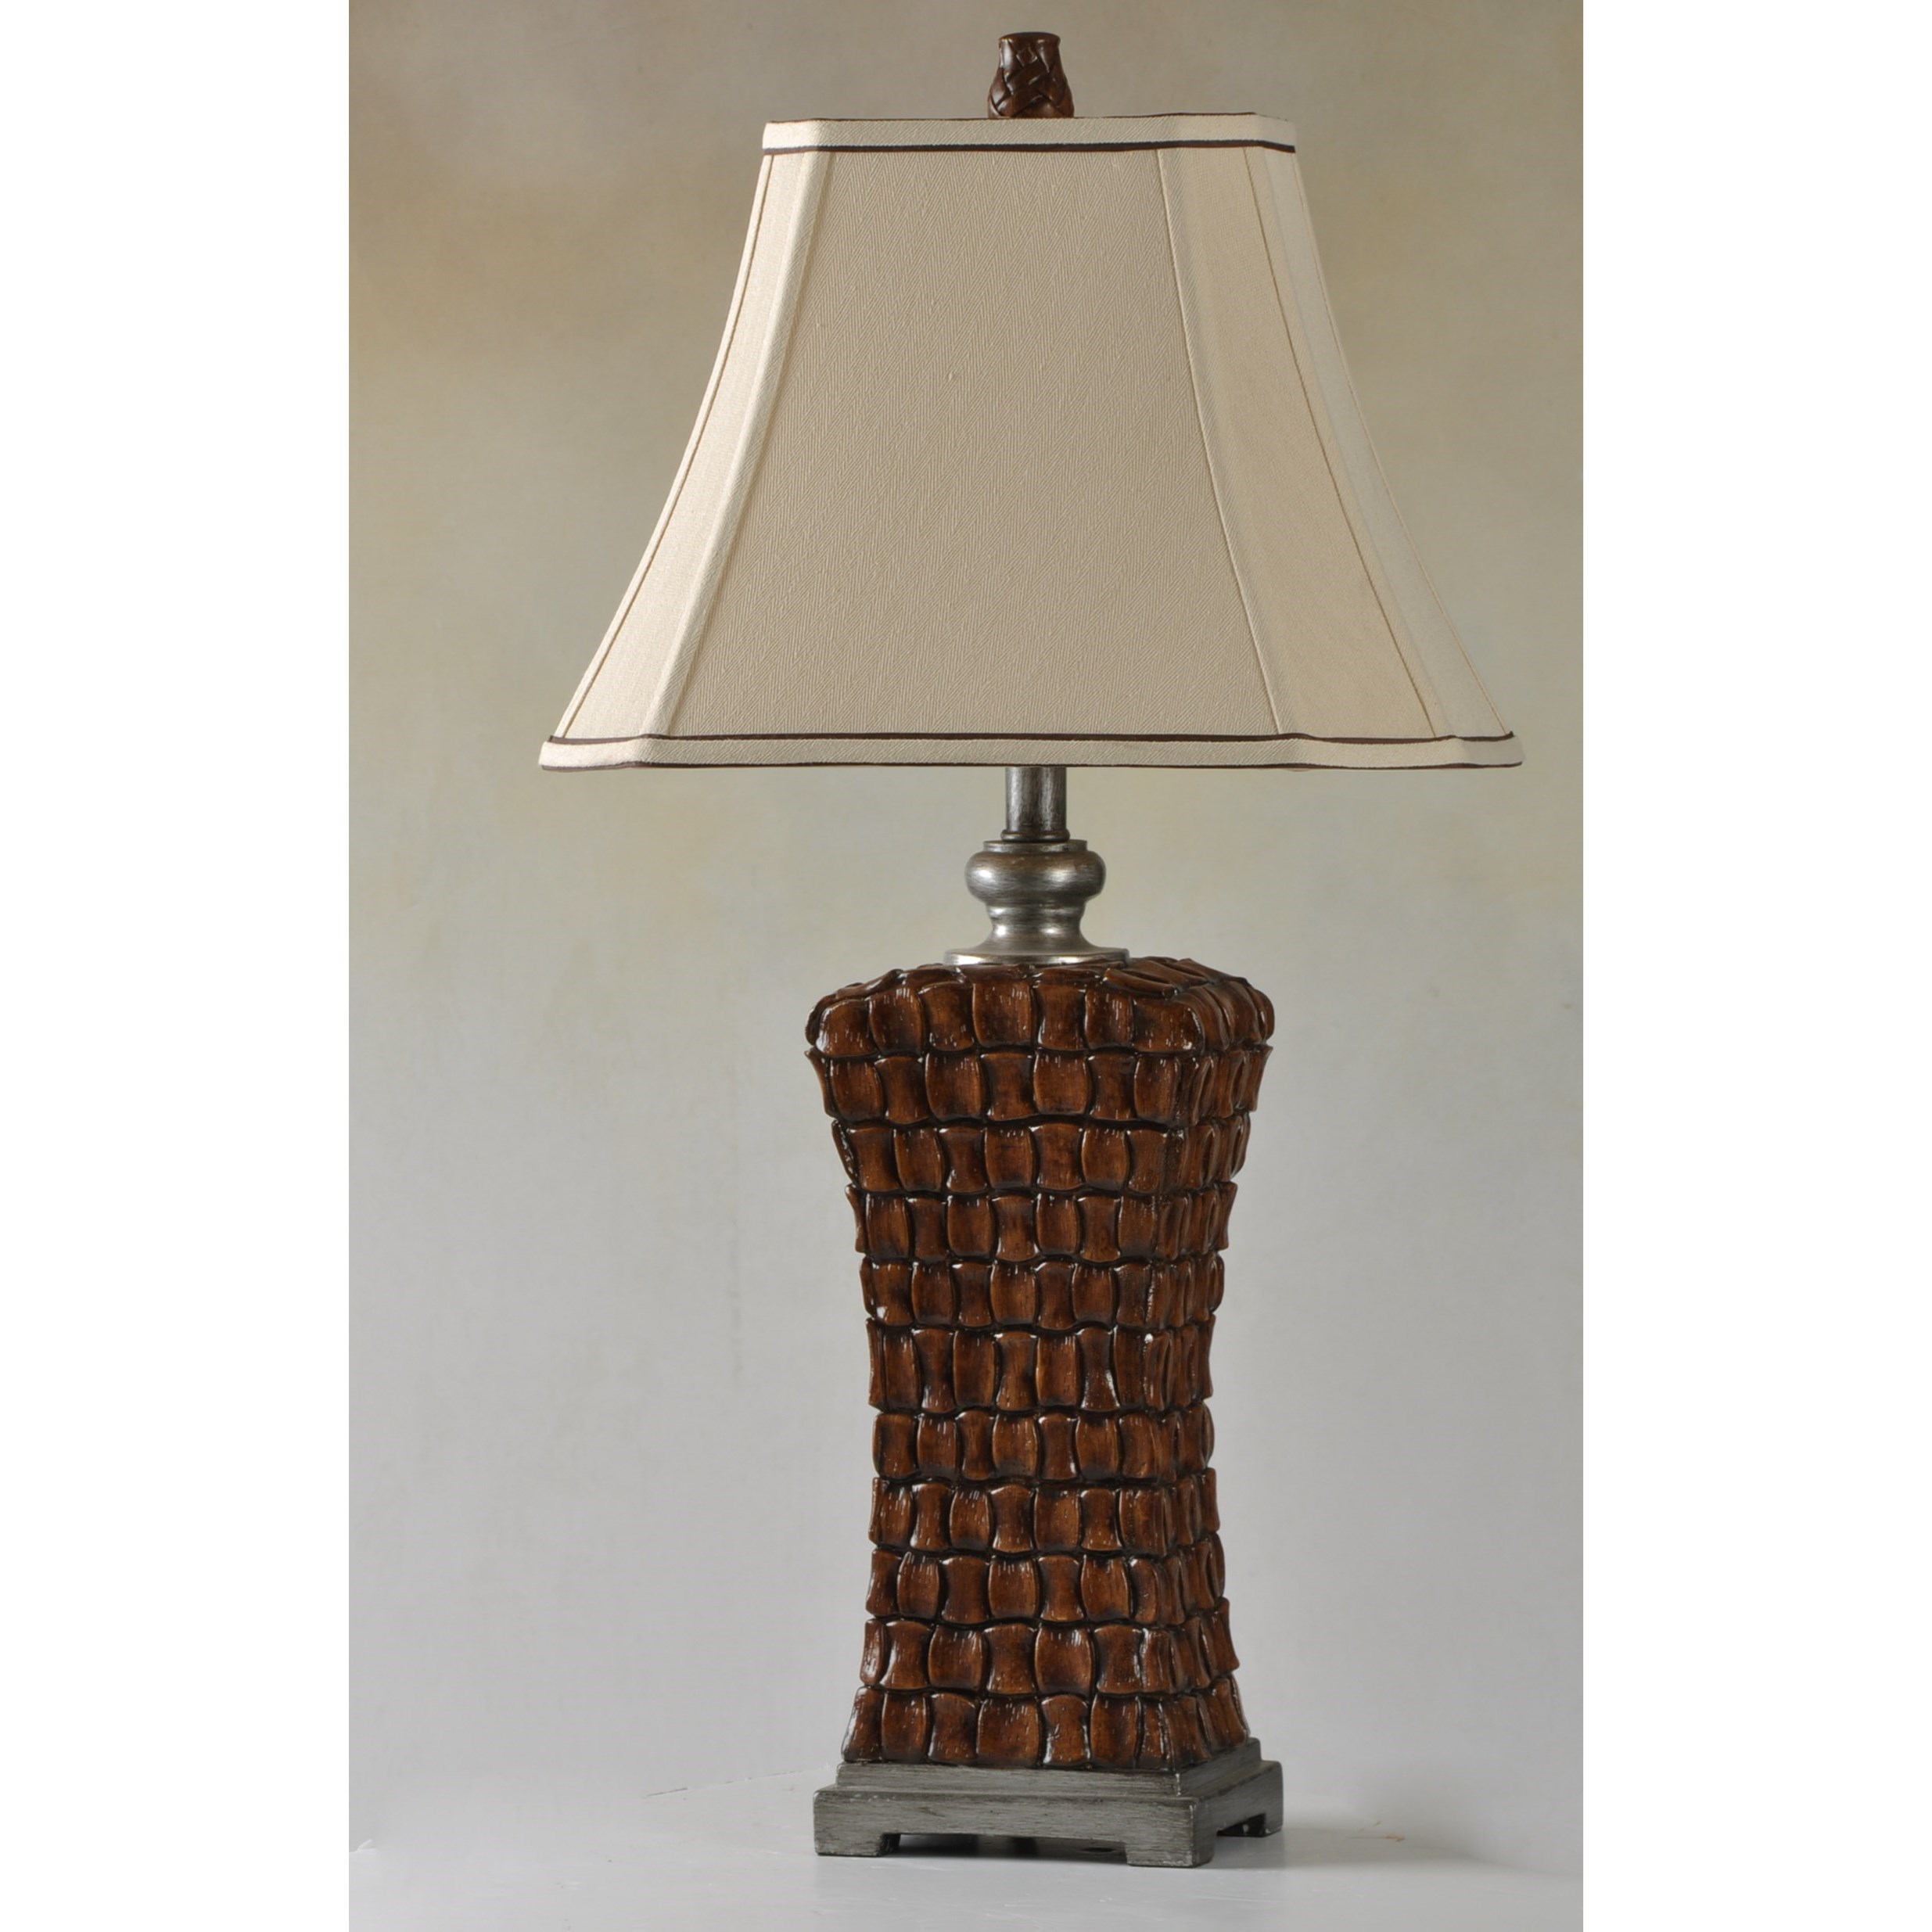 Lamps Table Lamp by StyleCraft at Alison Craig Home Furnishings